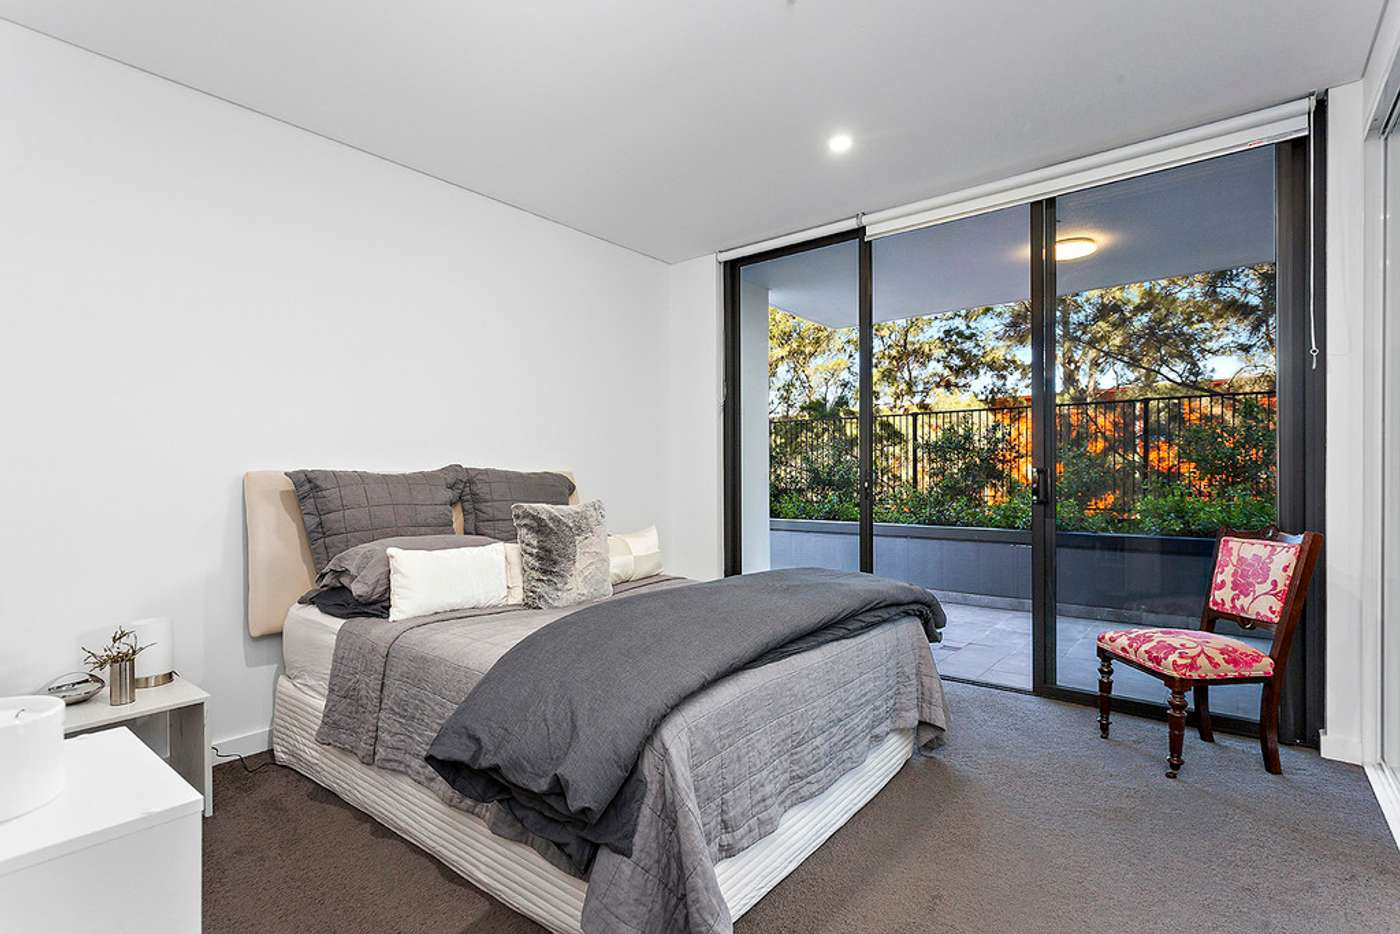 Main view of Homely apartment listing, 6/22-26 Flinders Street, Wollongong NSW 2500